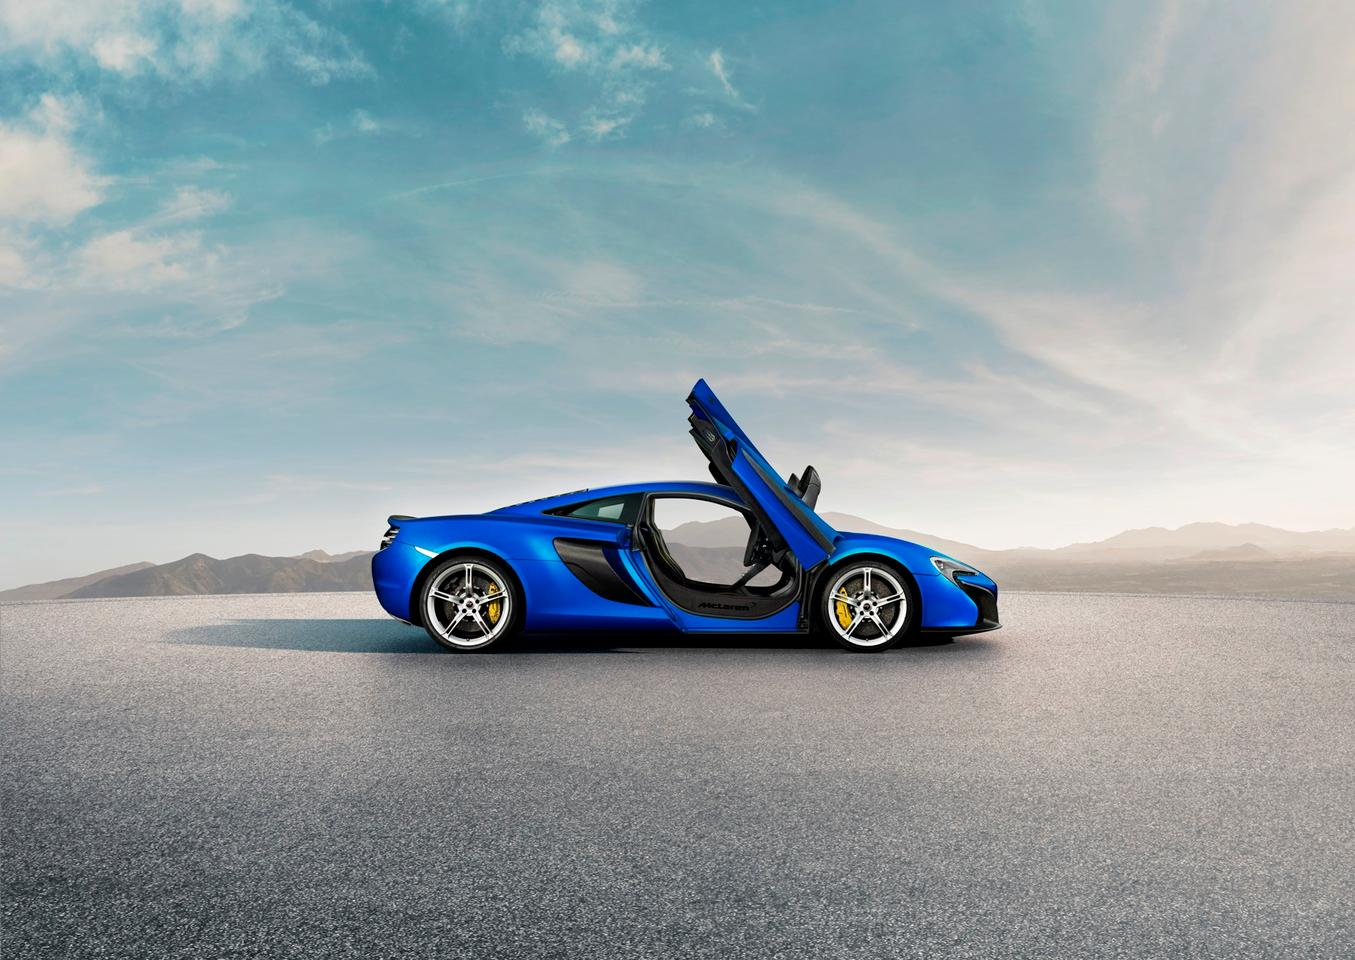 The 650S runs a revised 3.8 liter twin-turbocharged V8 capable of developing 641 horsepower and 500 lb ft (678 Nm) of torque via a 7-speed SSG gearbox